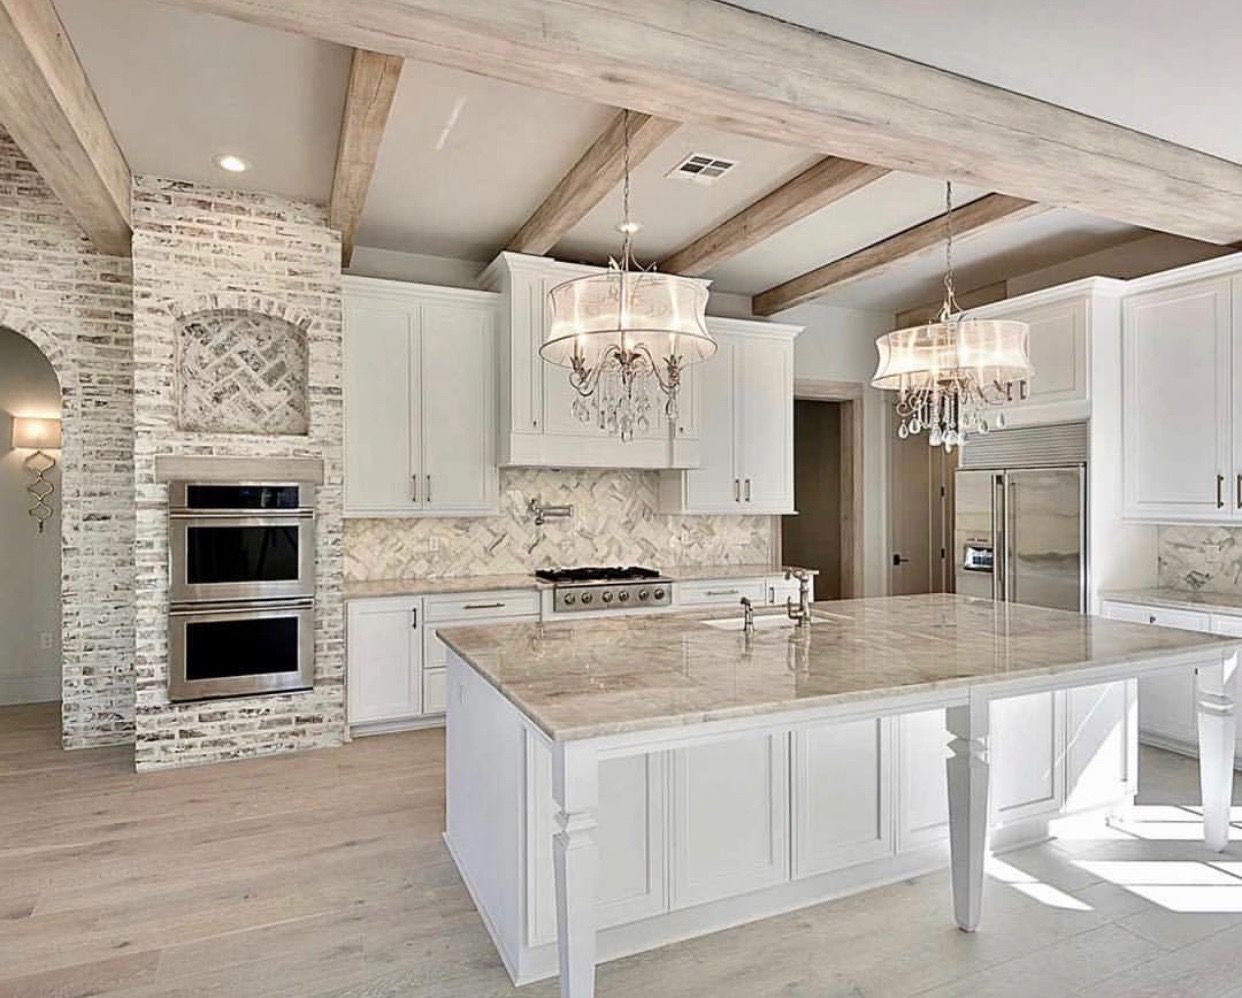 Pin By Kathy Sears On J B Home Decor Kitchen House Design Home Remodeling